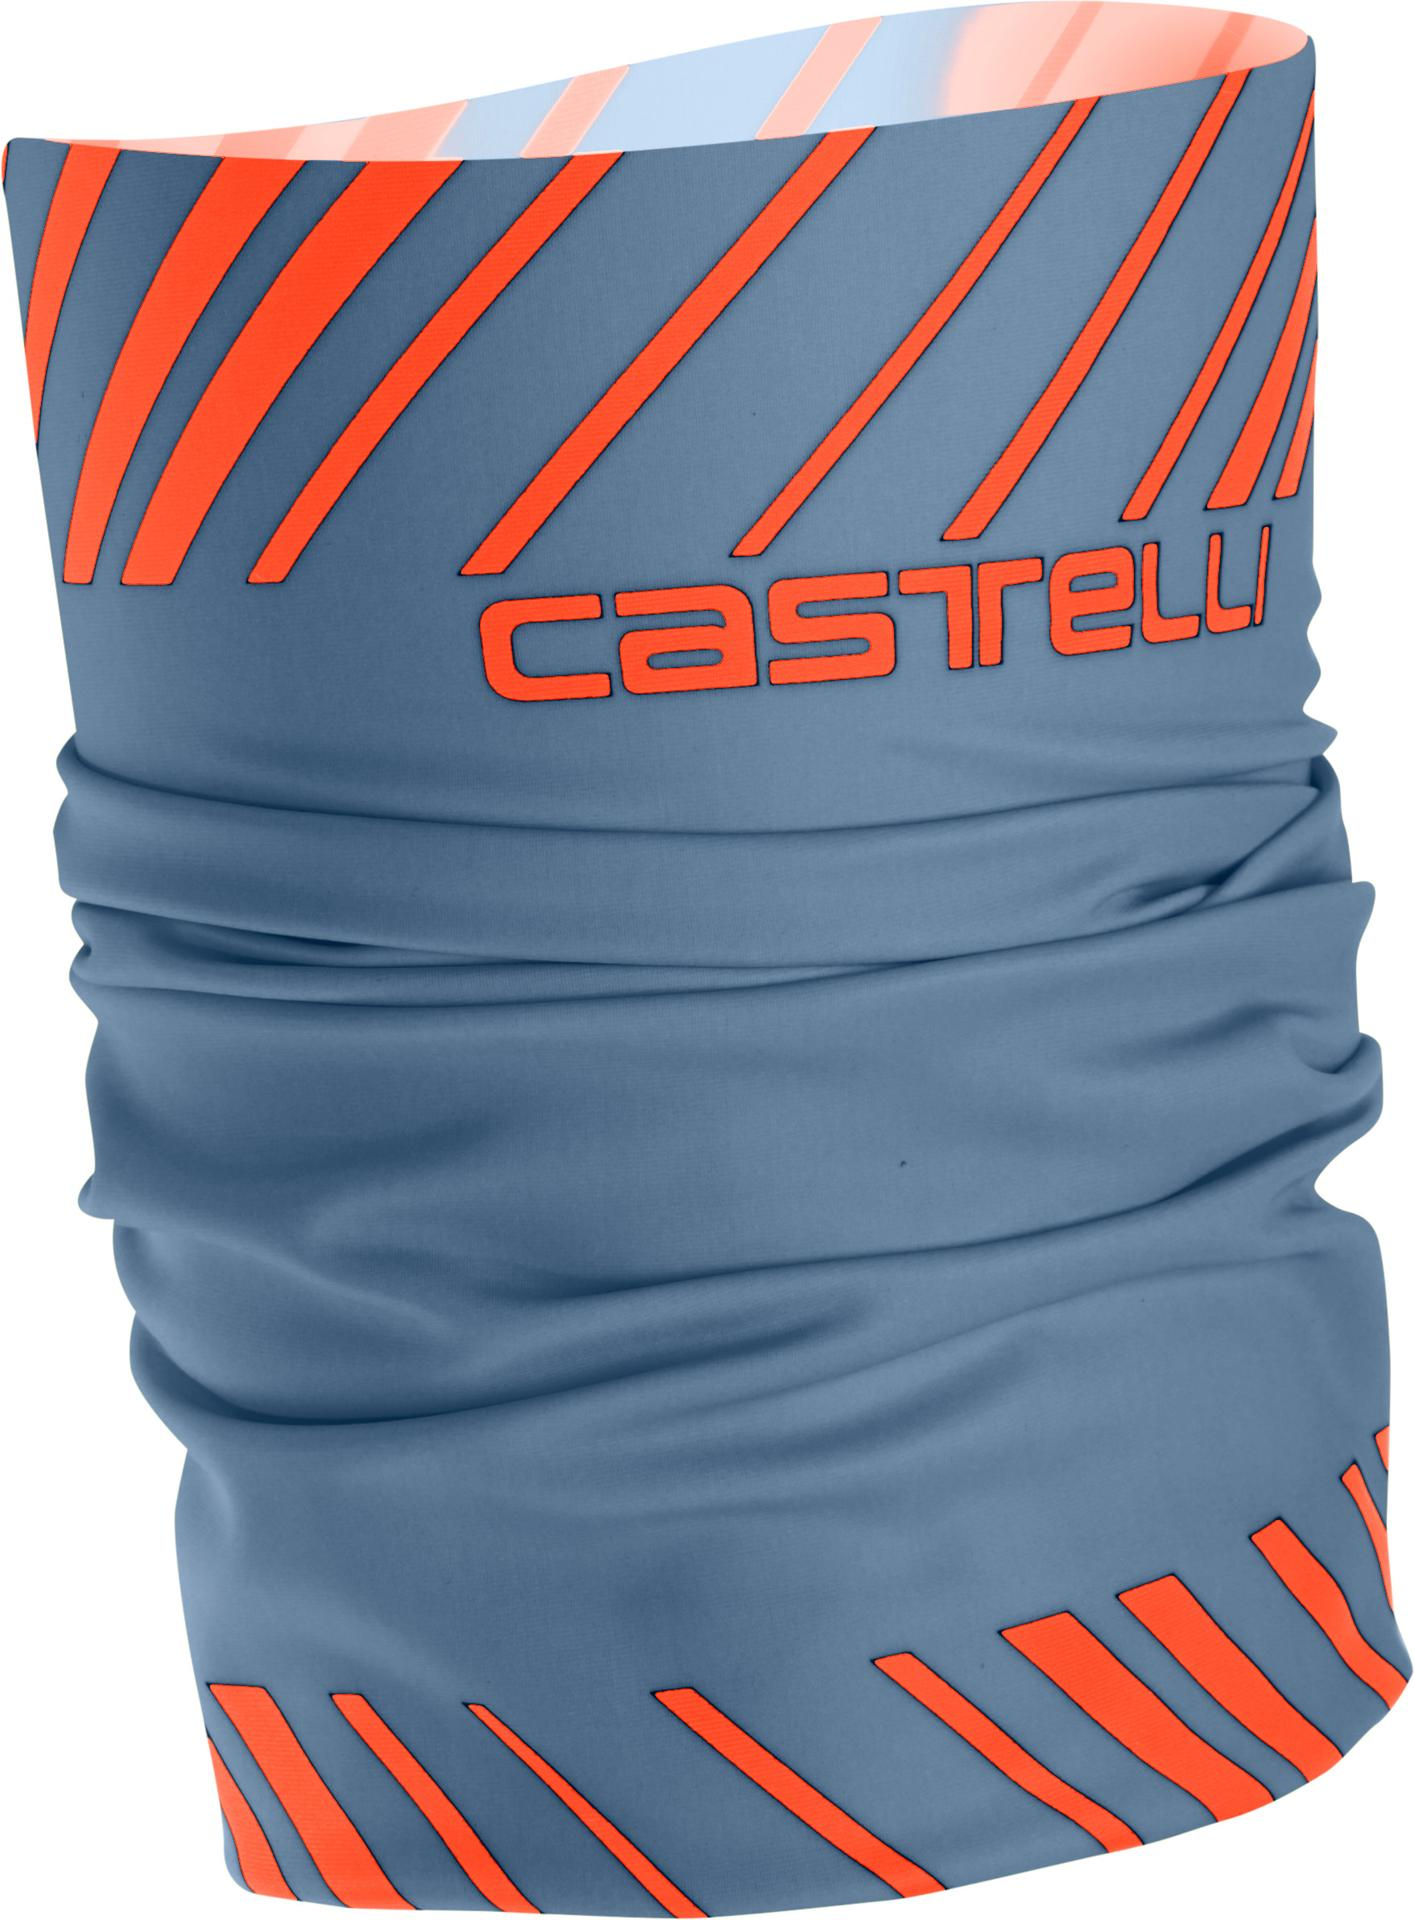 Castelli Bandana voor Heren Blauw Oranje / CA Arrivo 3 Thermo Head Thingy L Steel Blue/Orange